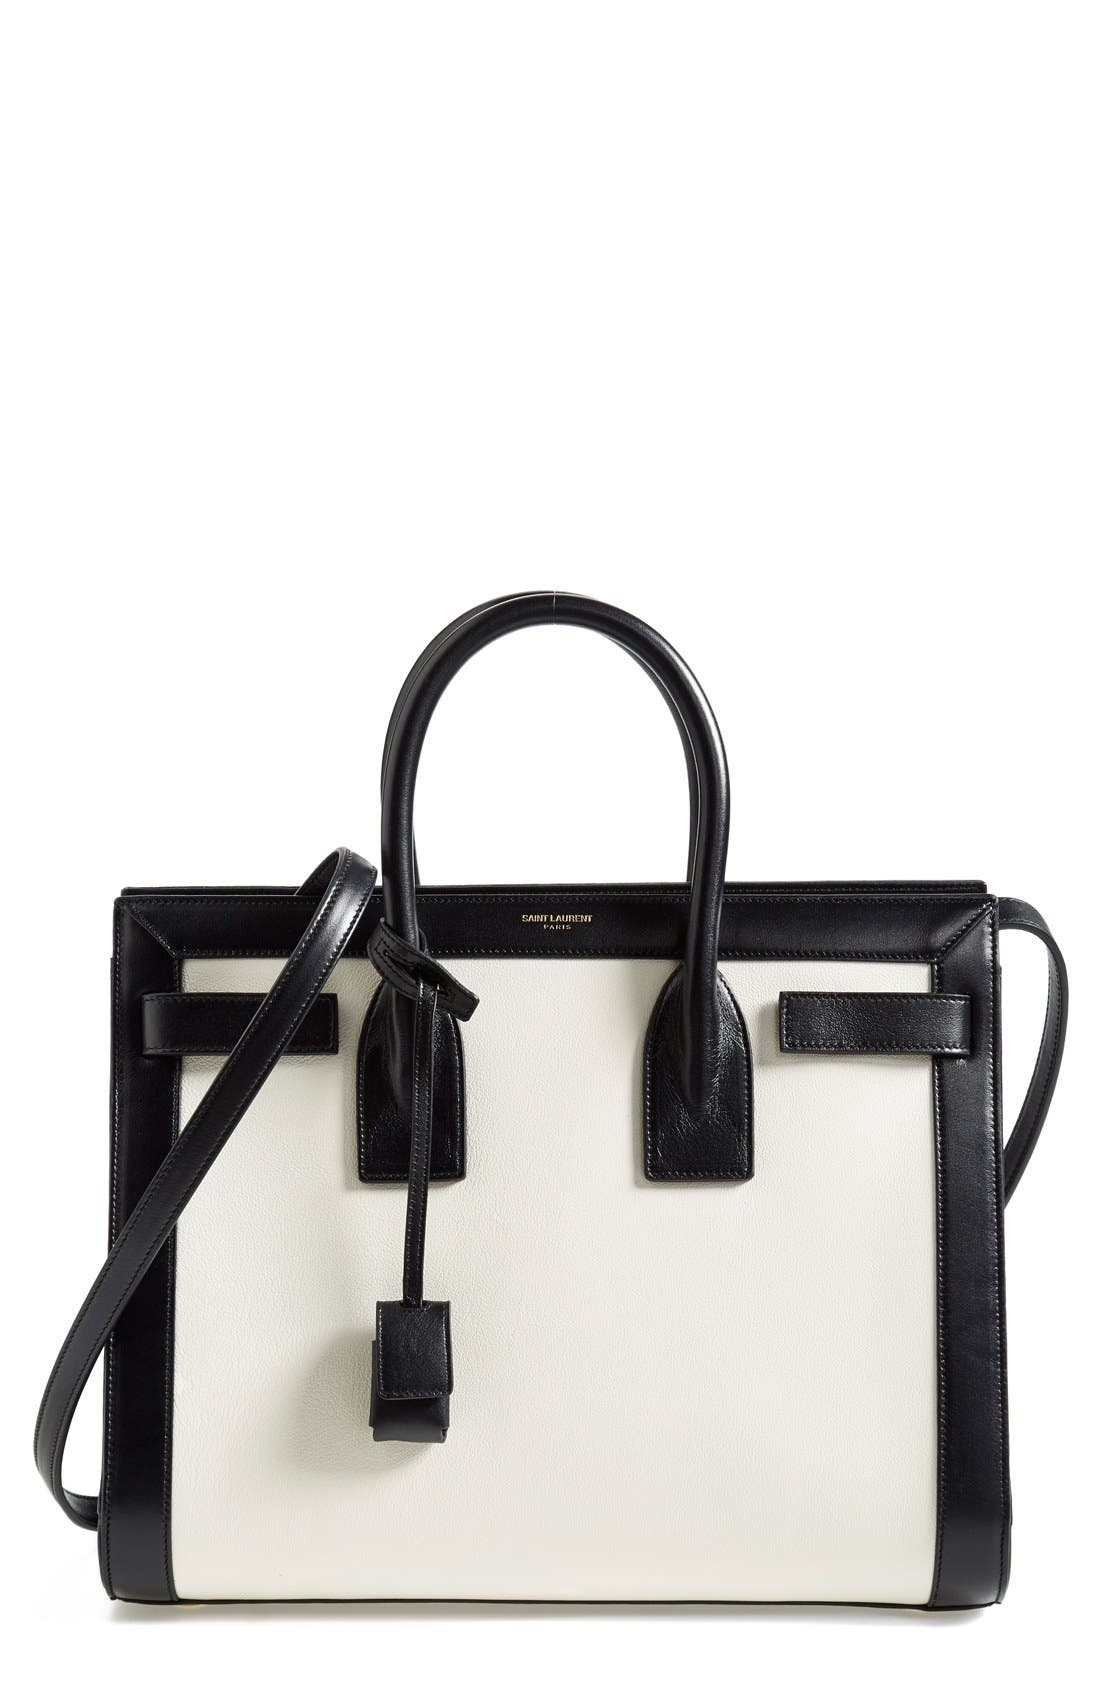 Main Image - Saint Laurent 'Small Sac de Jour' Colorblock Leather Tote